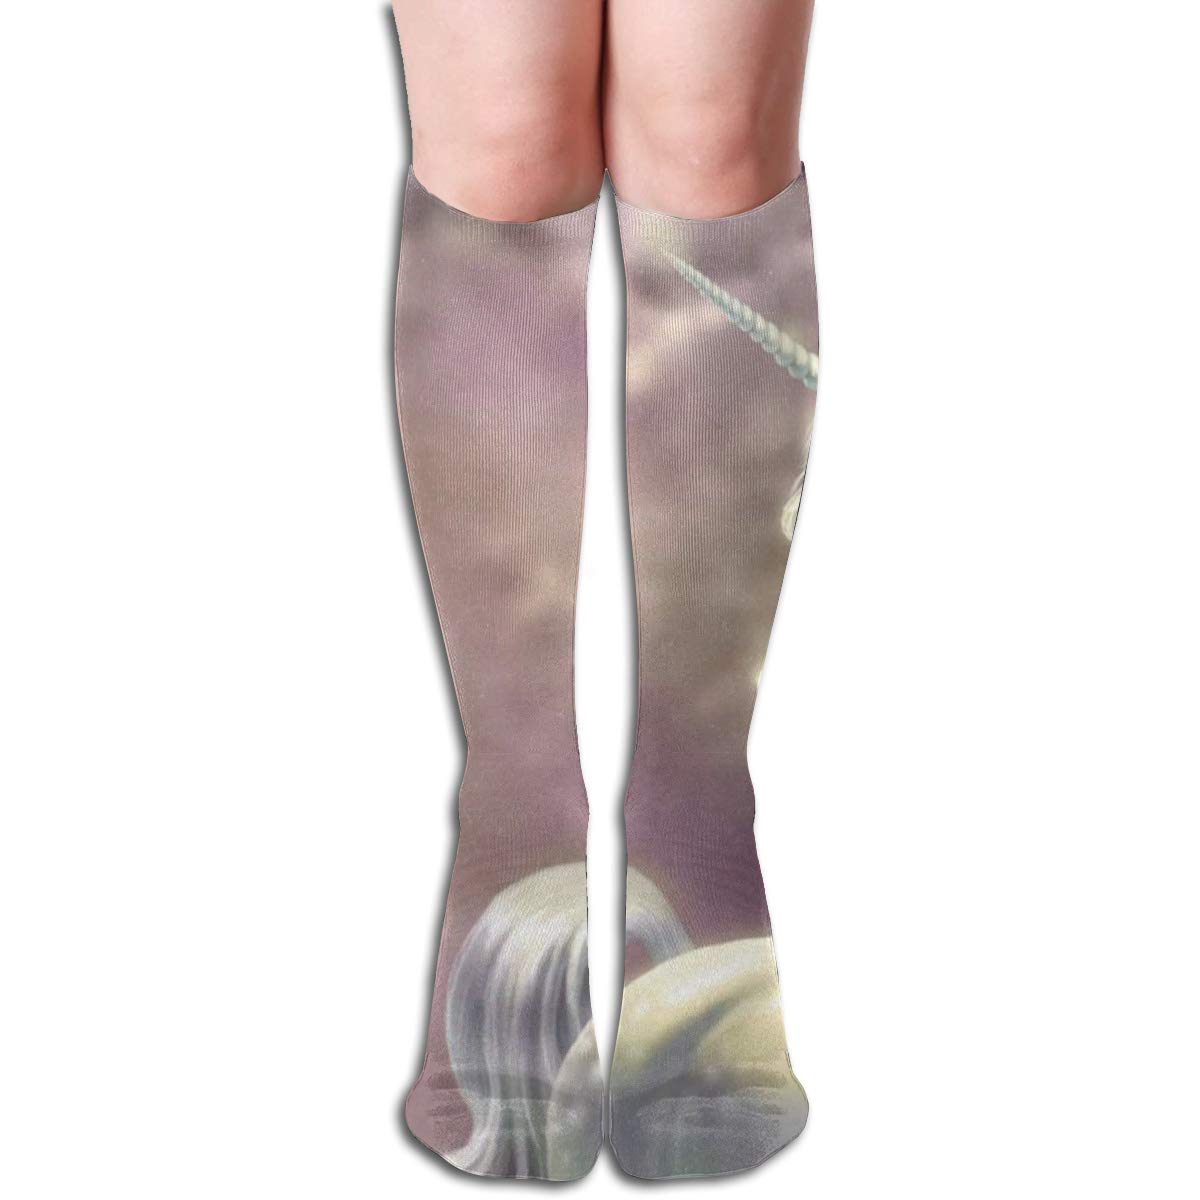 Stretch Stocking Horse Fantasy Soccer Socks Over The Calf Special For Running,Athletic,Travel